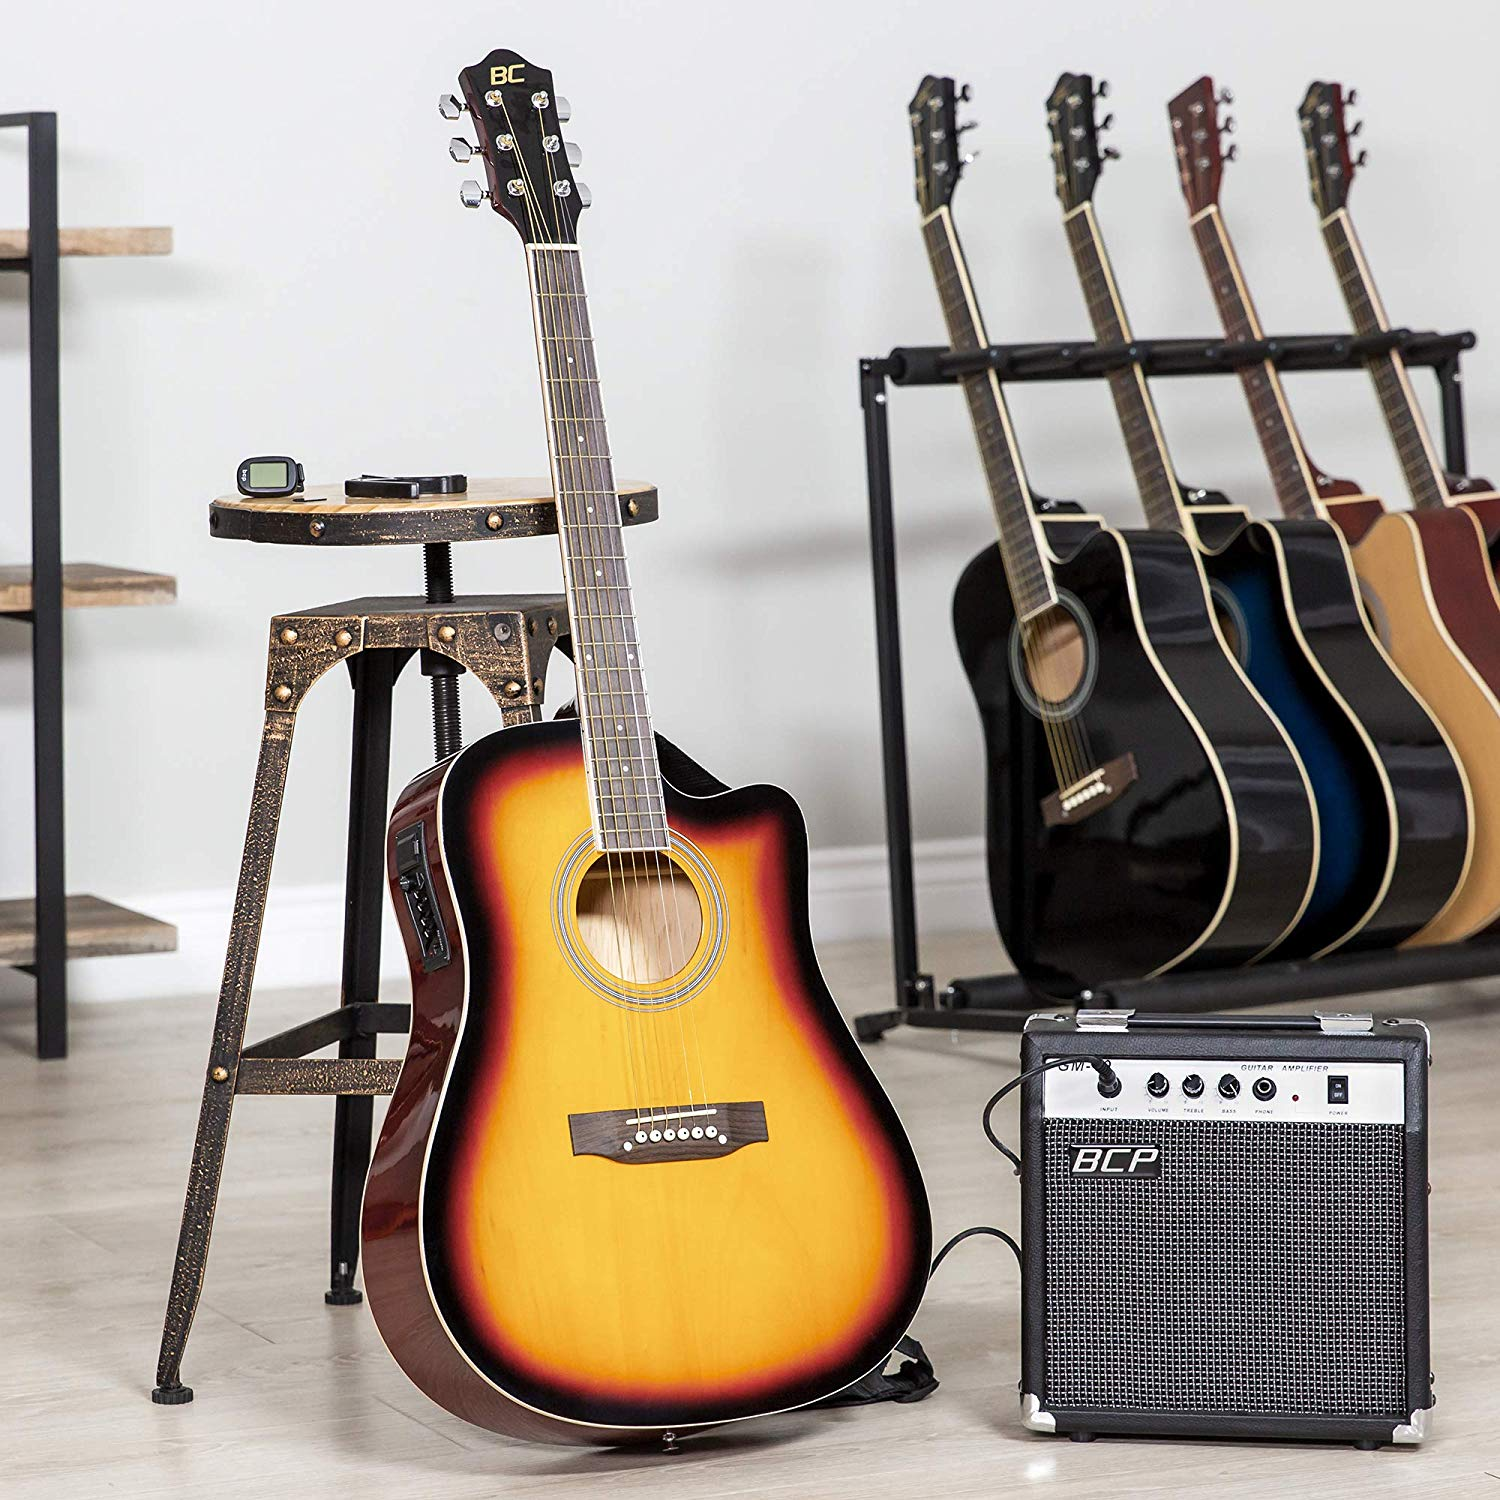 The Sunburst Colored BC Acoustic-Electric Guitar standing upright on display